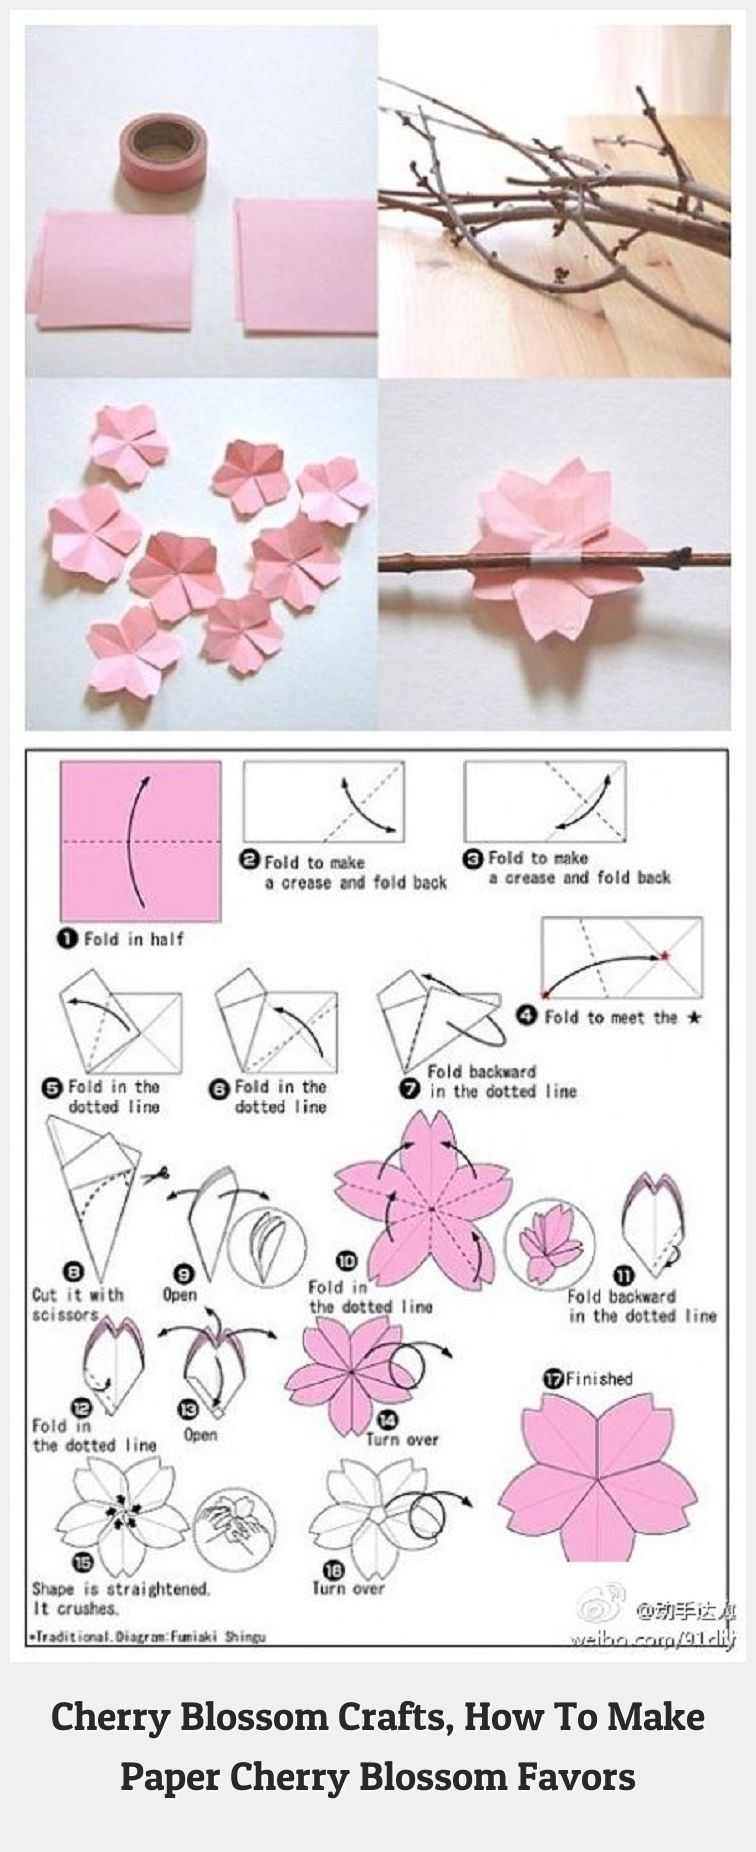 Cherry Blossoms 88295 The Cherry Blossom Theme For Weddings And Parties Is A Lovely One We Have A Few Diy Che Paper Flowers Paper Crafts Cherry Blossom Theme